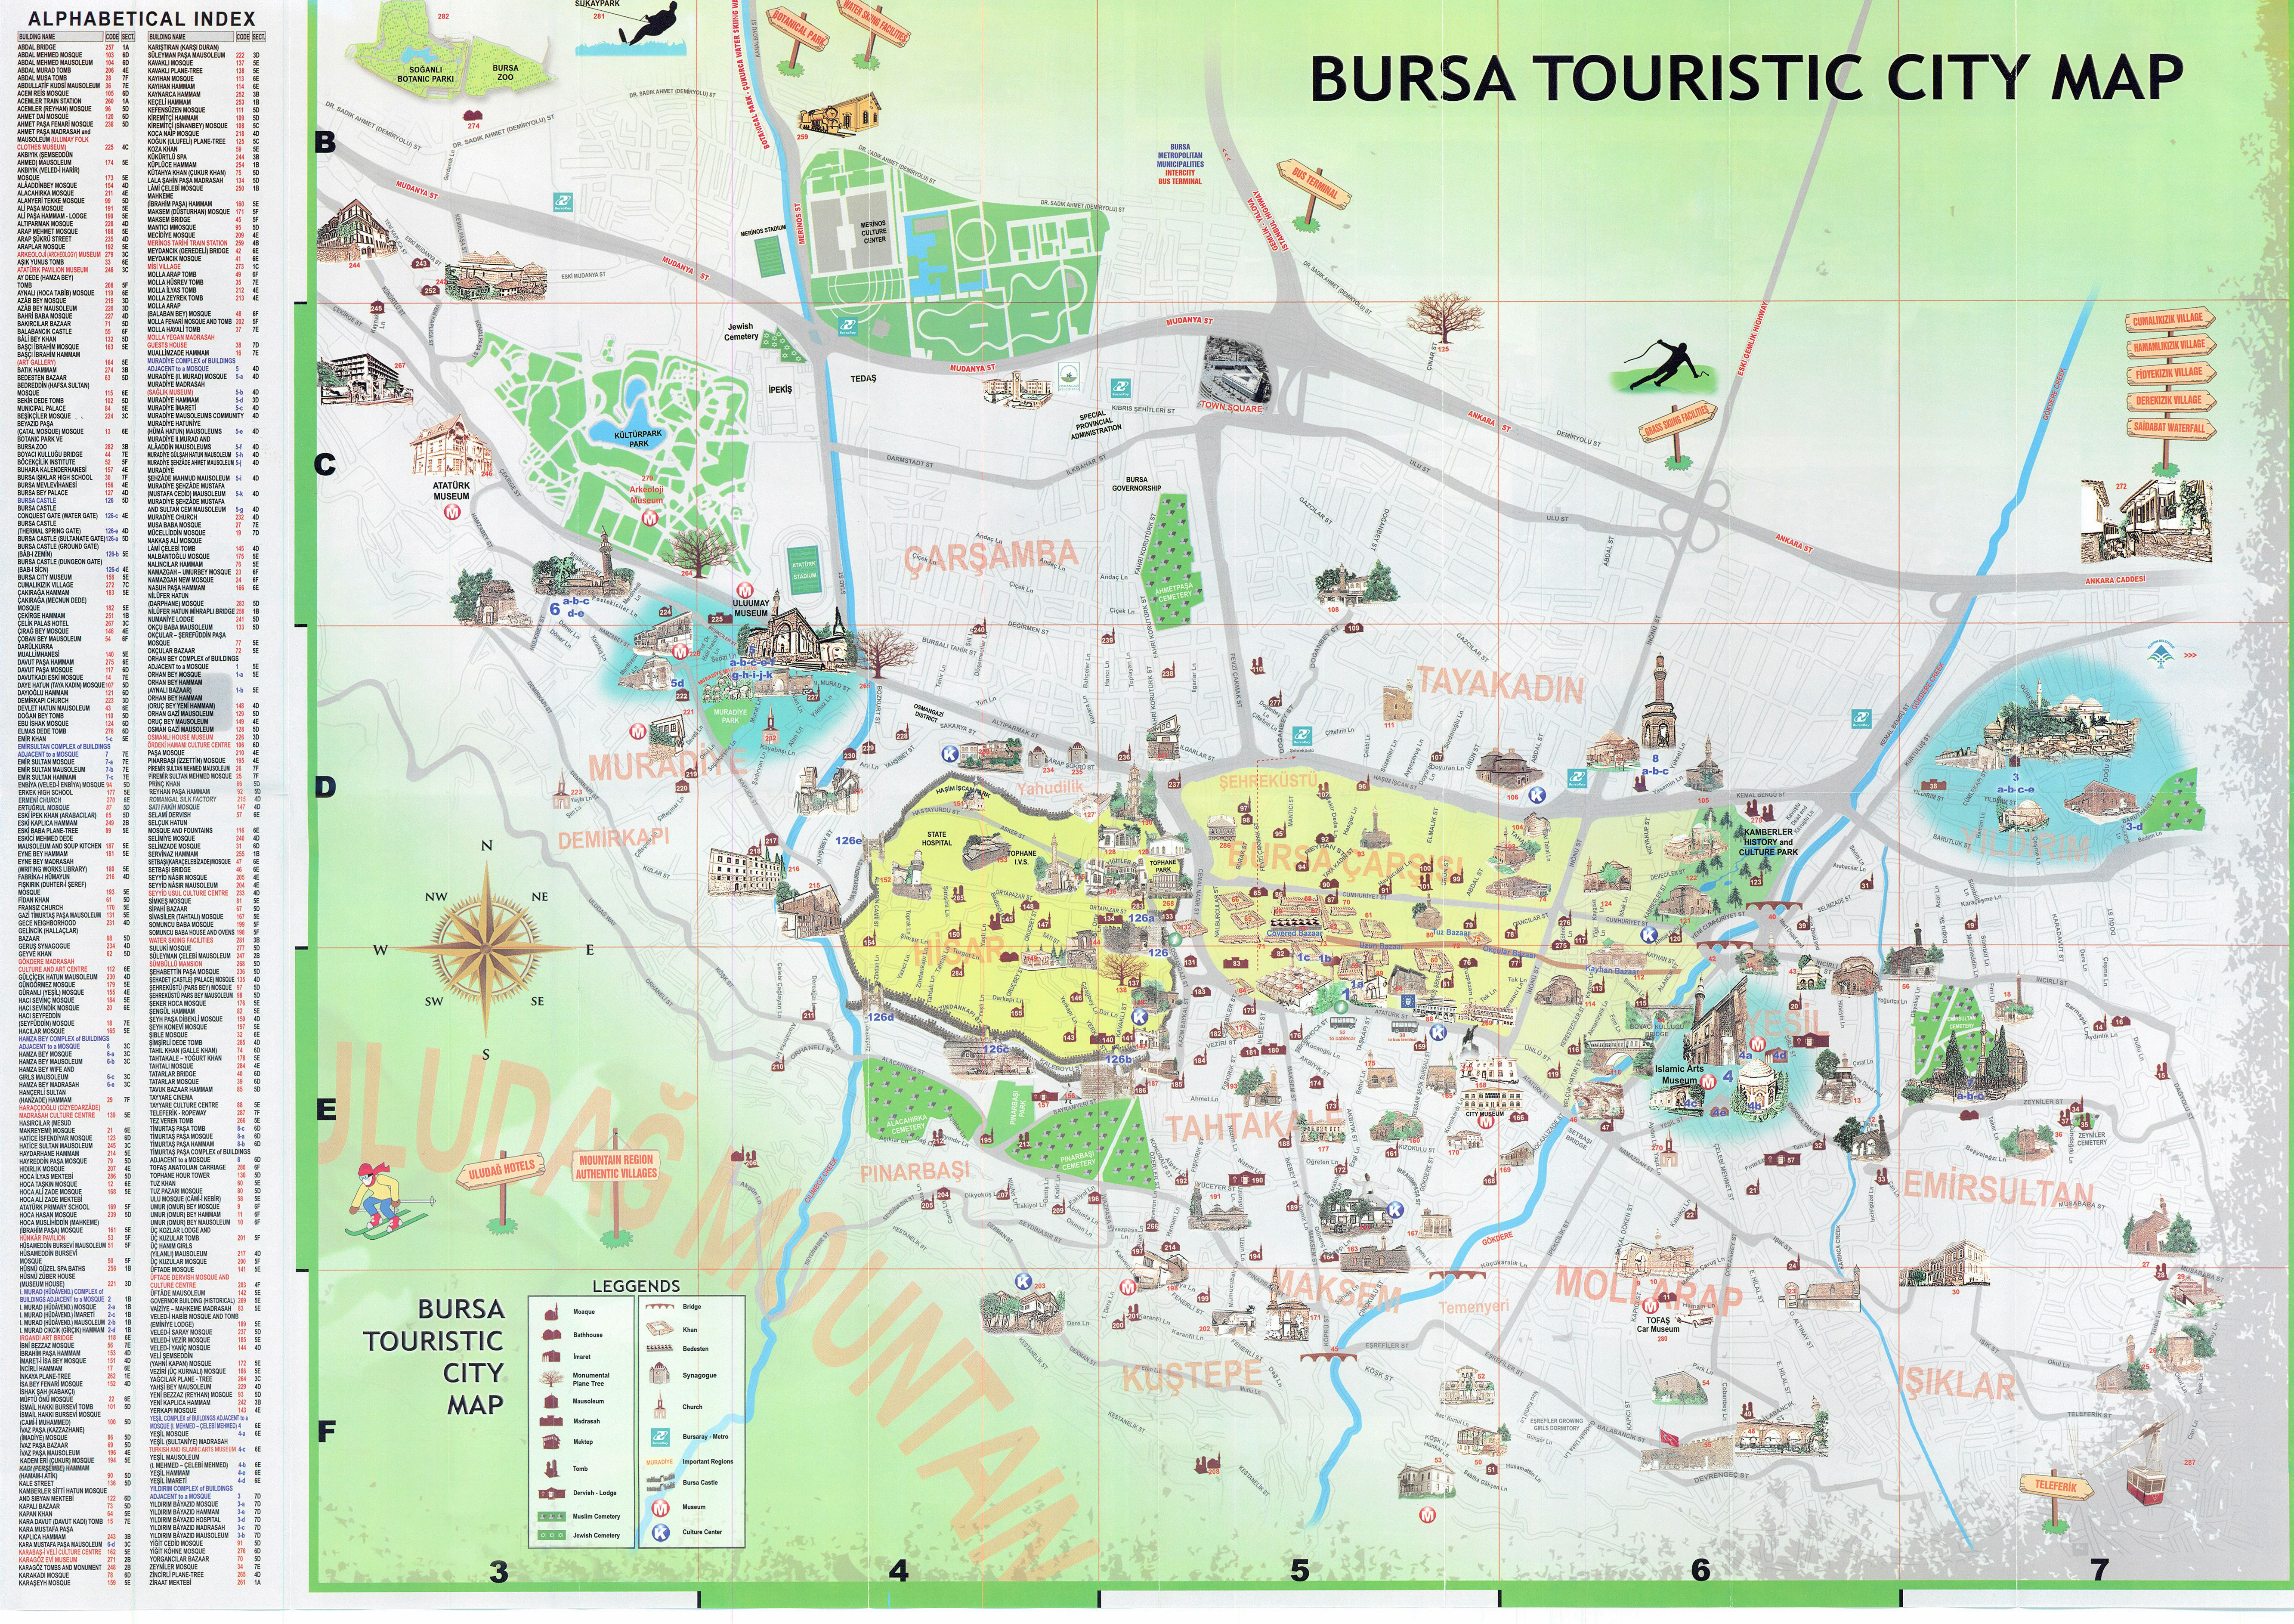 Large Bursa Maps for Free Download and Print HighResolution and